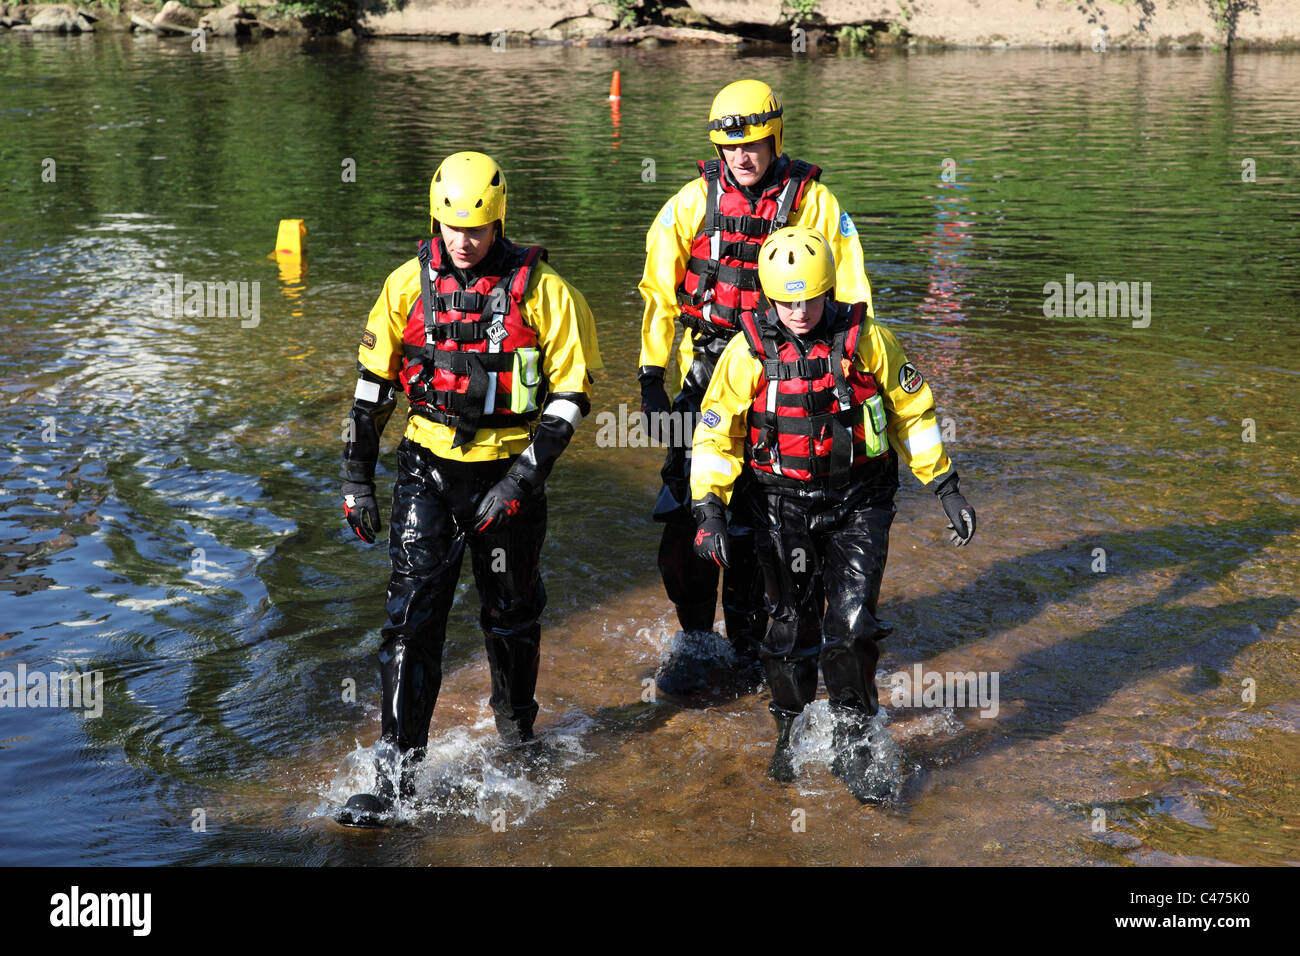 An RSPCA Team inspecting the River Eden at the Appleby Horse Fair, Appleby-In-Westmorland, Cumbria, England, U.K. - Stock Image